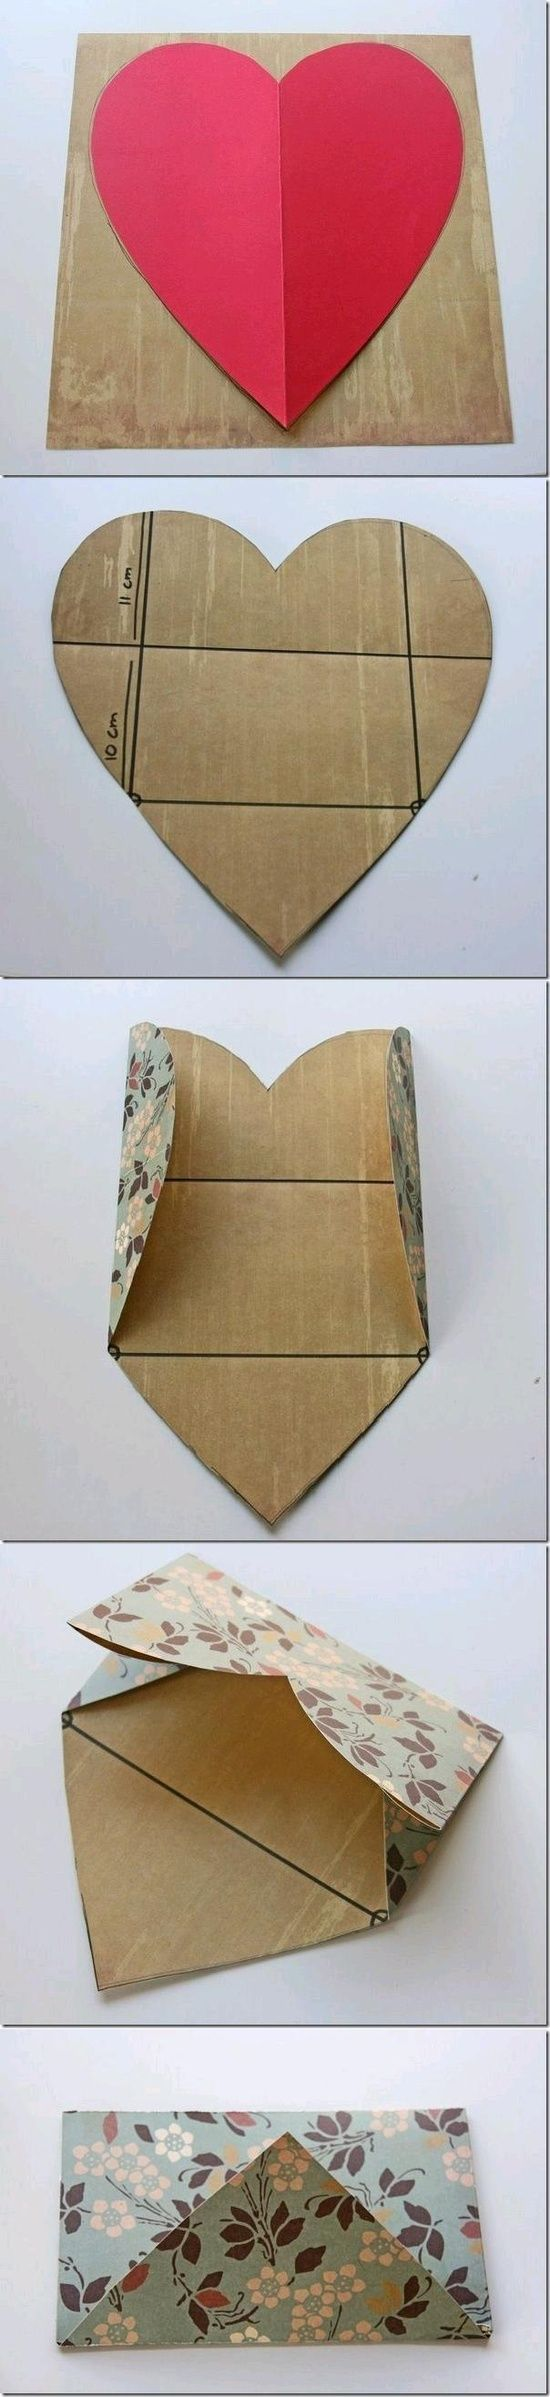 I want to make this gift, but inside the heart place a string adding more small hearts then a card on the end with John 3:16, Christ sending his only son, because of his Love for You! - DIY Envelope from a Heart